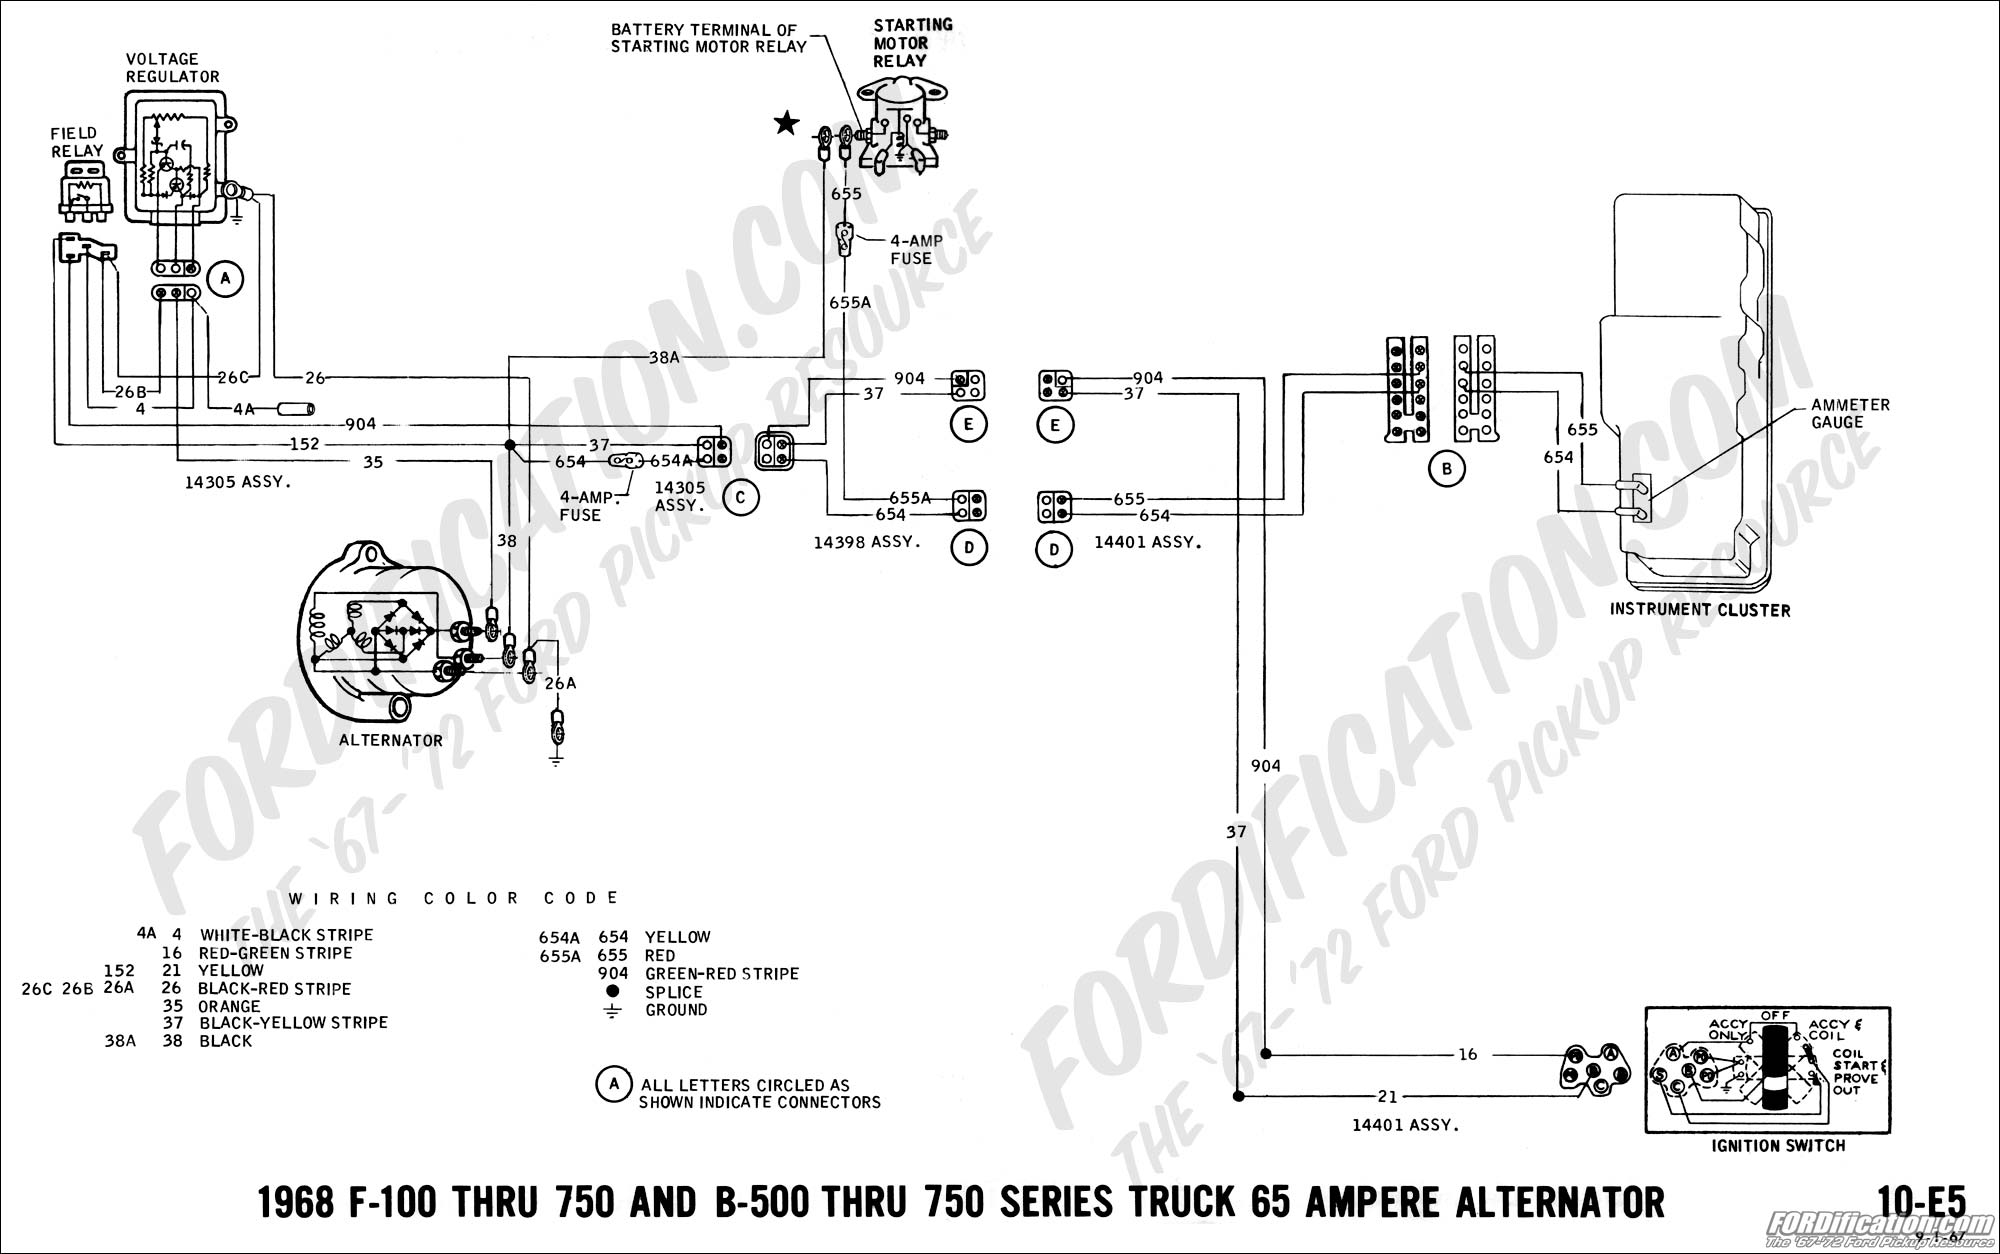 Voltage Regulator Wiring 69 Ford Pickup - wiring diagrams schematics